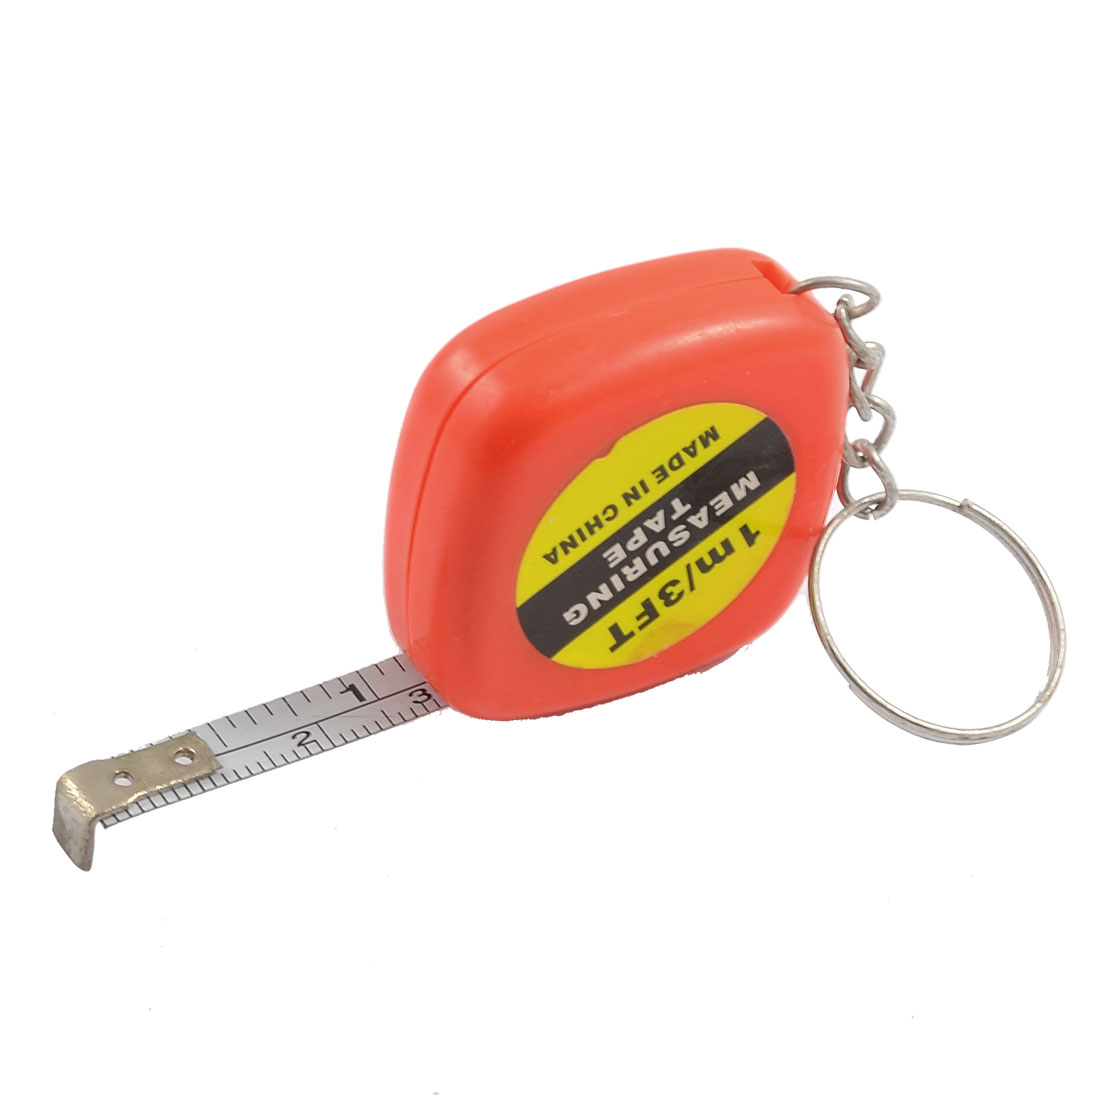 1M-Length-Orange-Red-Plastic-Shell-Retractable-Measure-Tape-w-Keyring